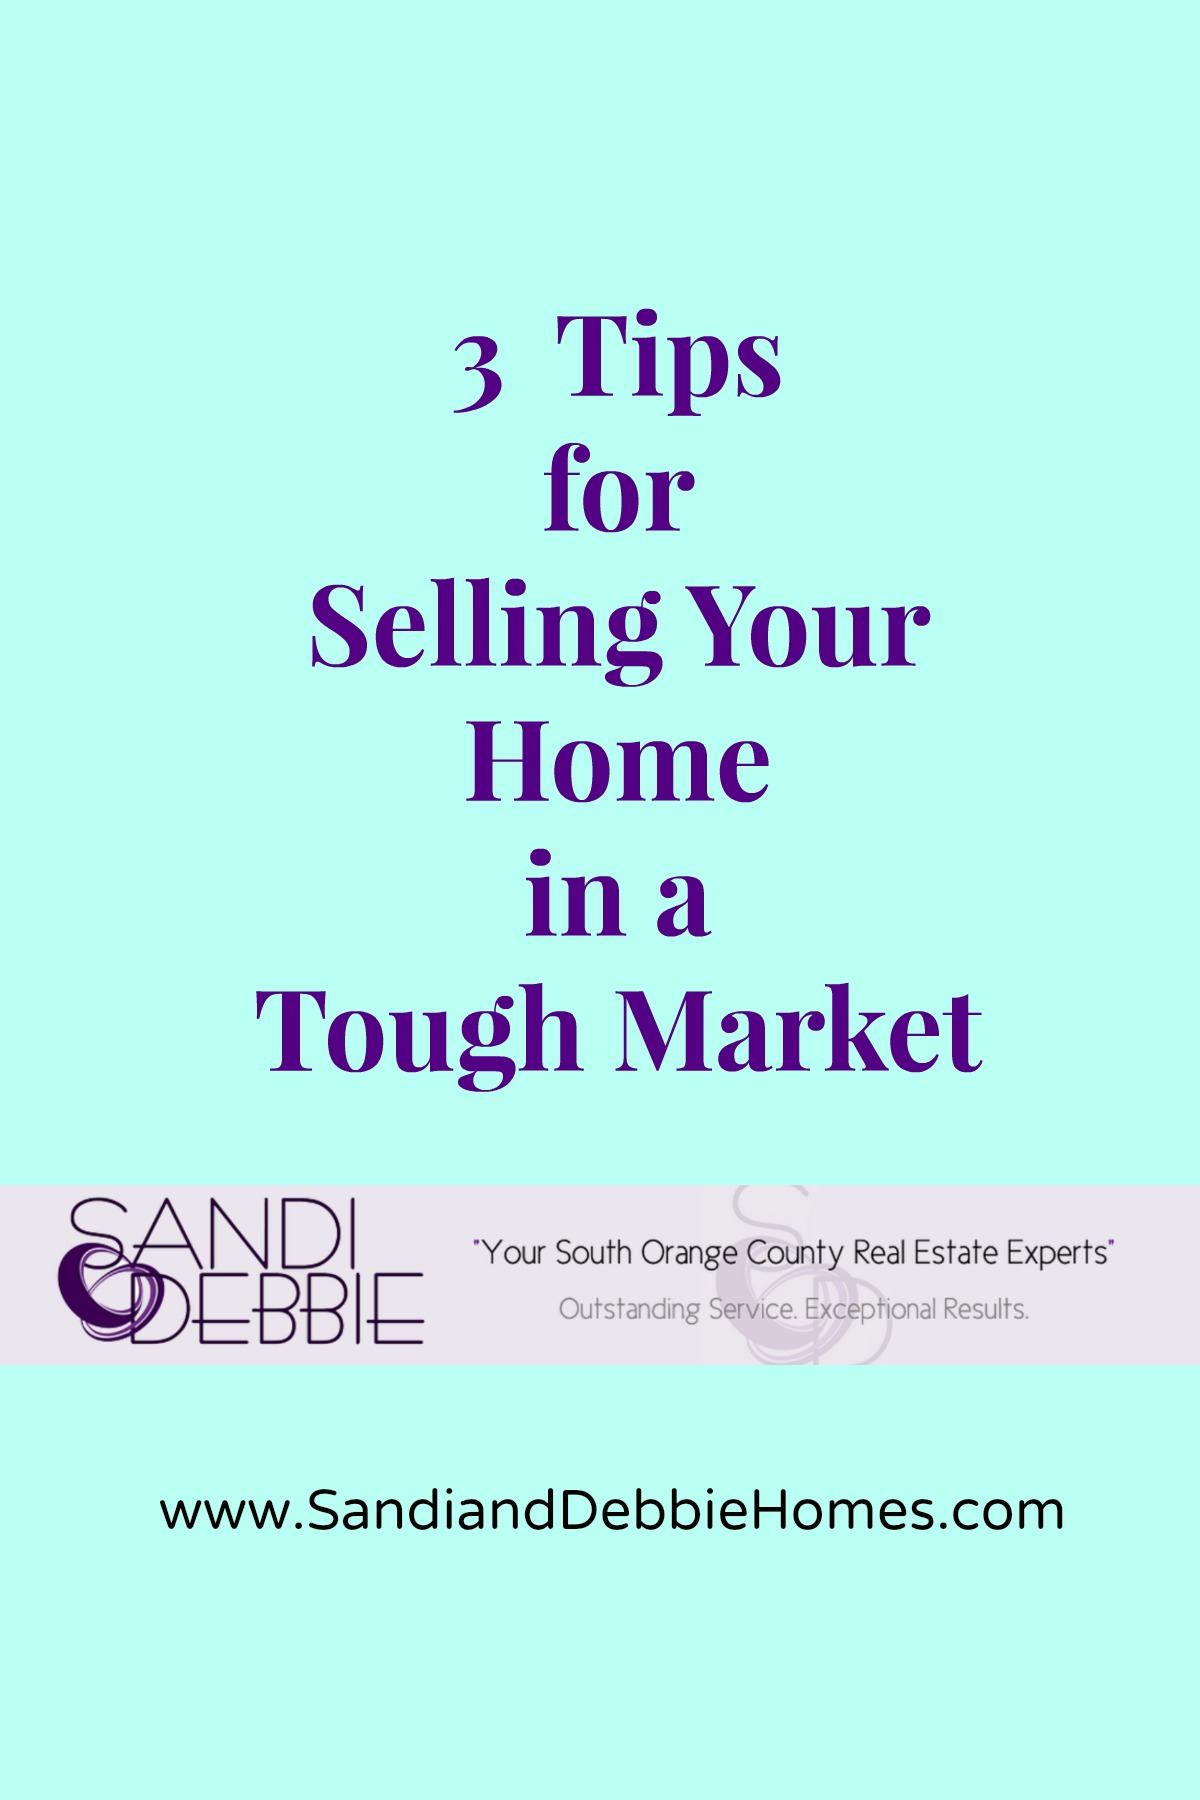 Tips for Selling your Home in a Tough Market